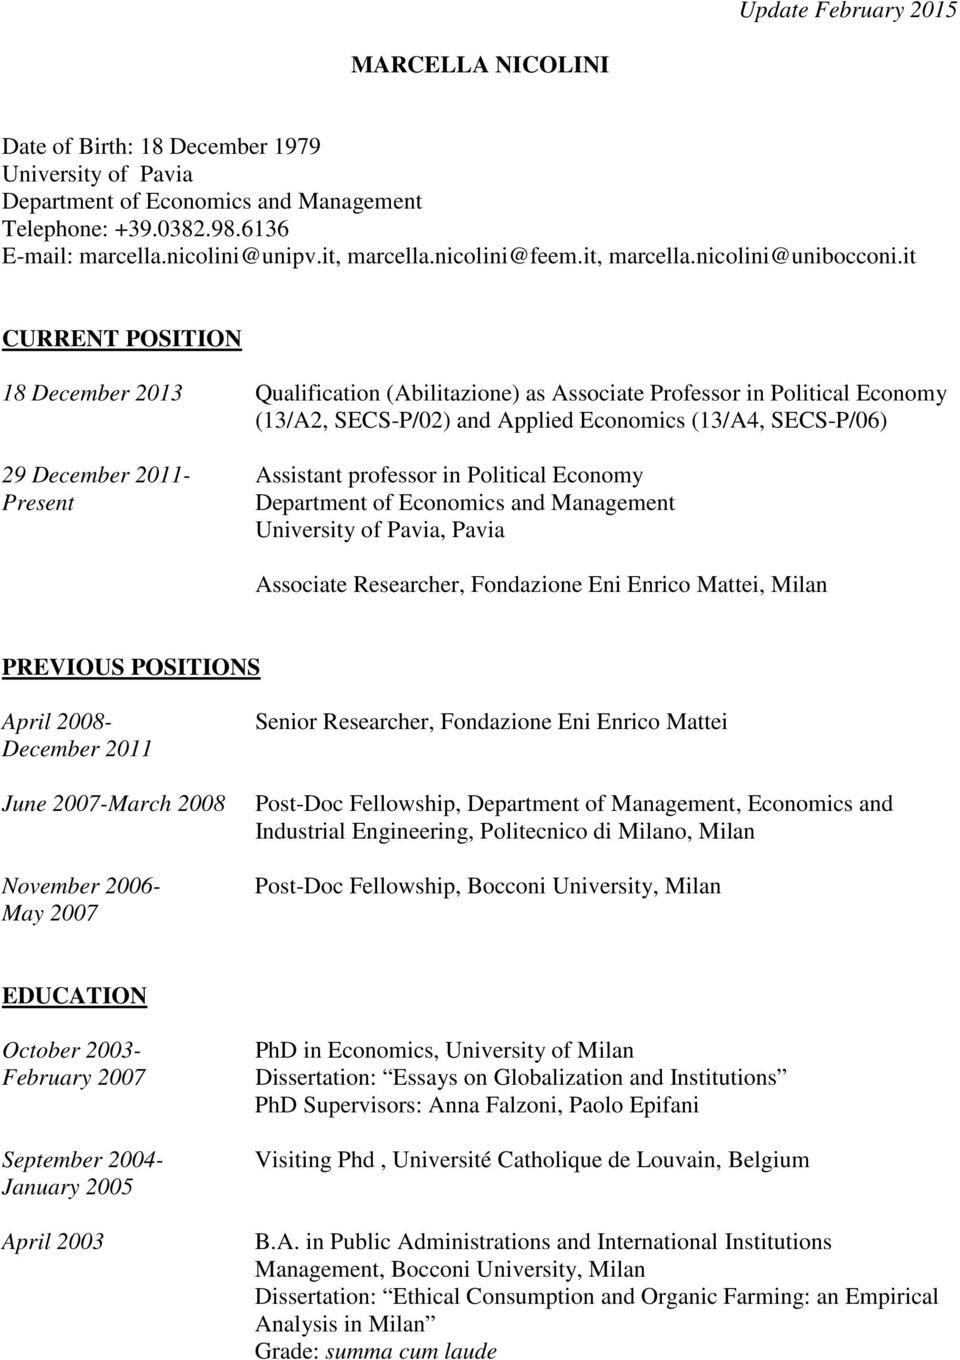 it CURRENT POSITION 18 December 2013 Qualification (Abilitazione) as Associate Professor in Political Economy (13/A2, SECS-P/02) and Applied Economics (13/A4, SECS-P/06) 29 December 2011- Assistant